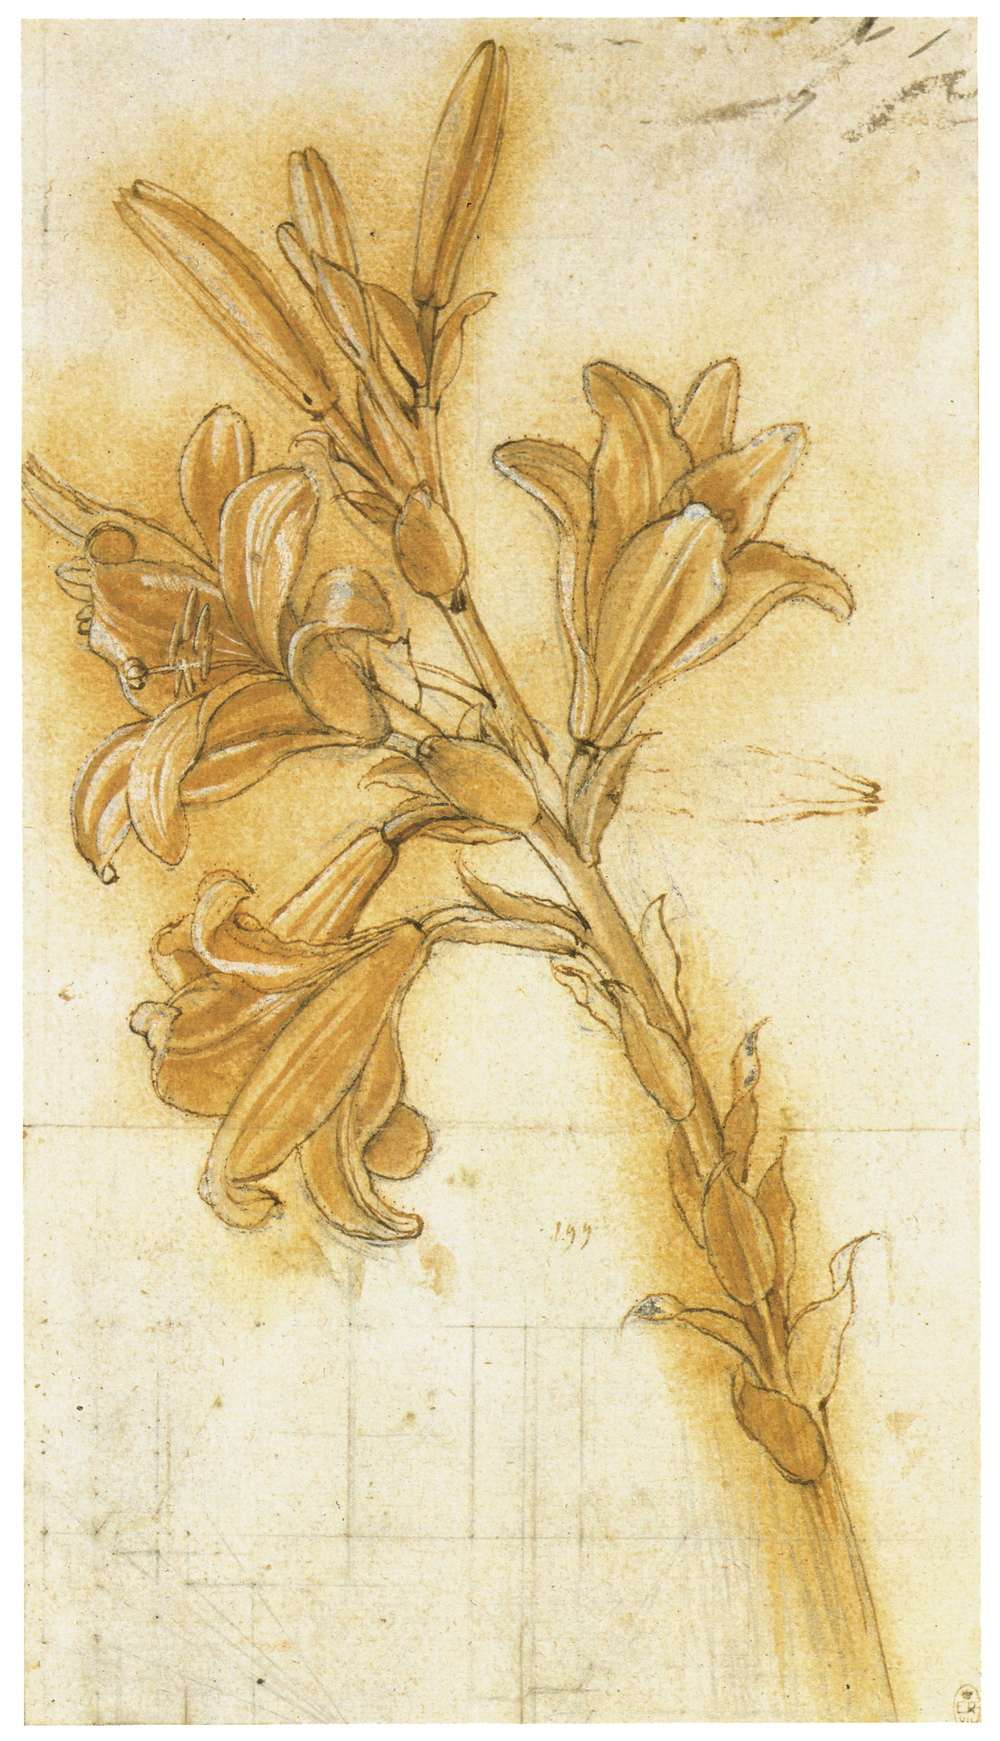 Leonardo da Vinci - Drawings - Plants - 01.JPG